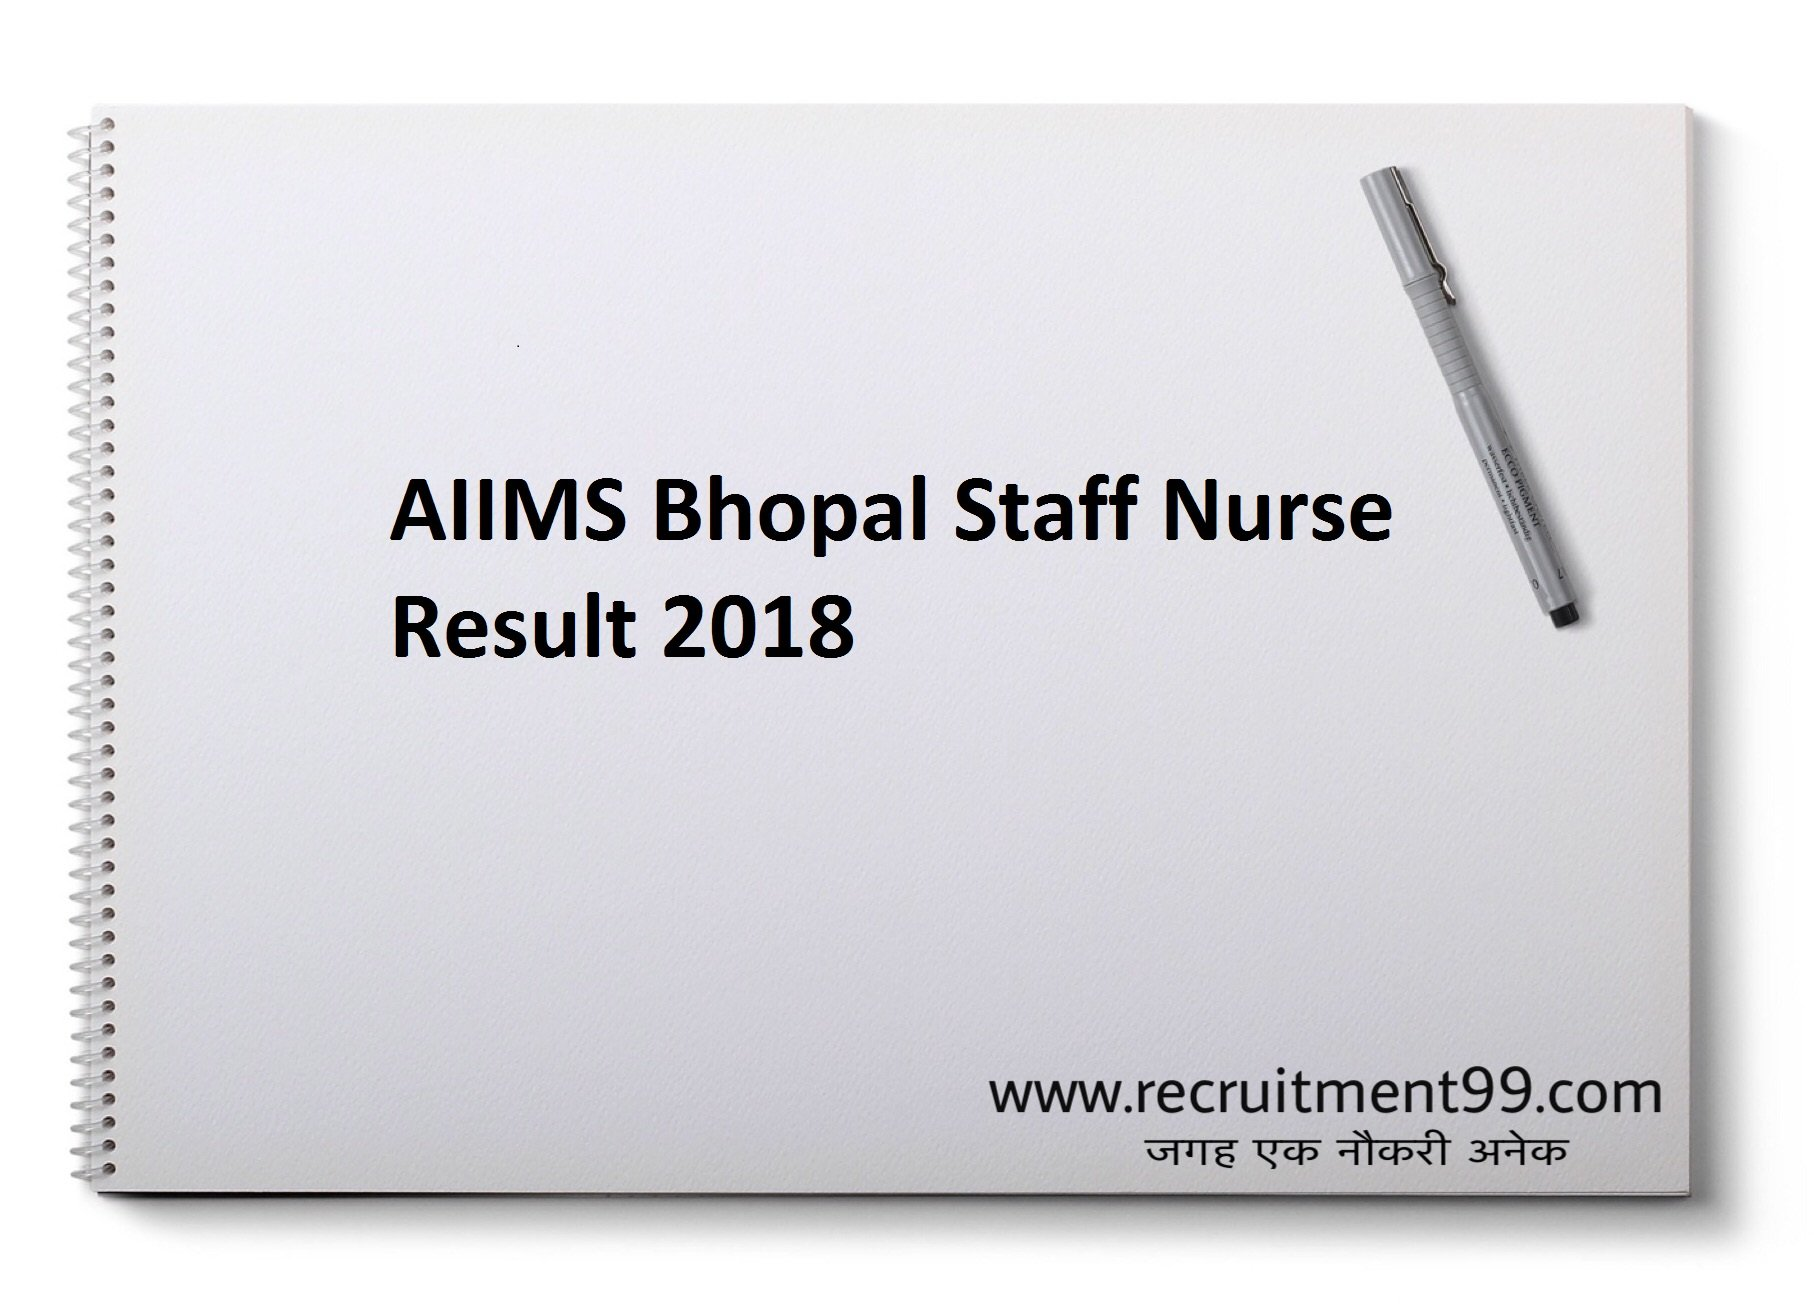 AIIMS Bhopal Staff Nurse Posts Recruitment Admit Card Result 2018